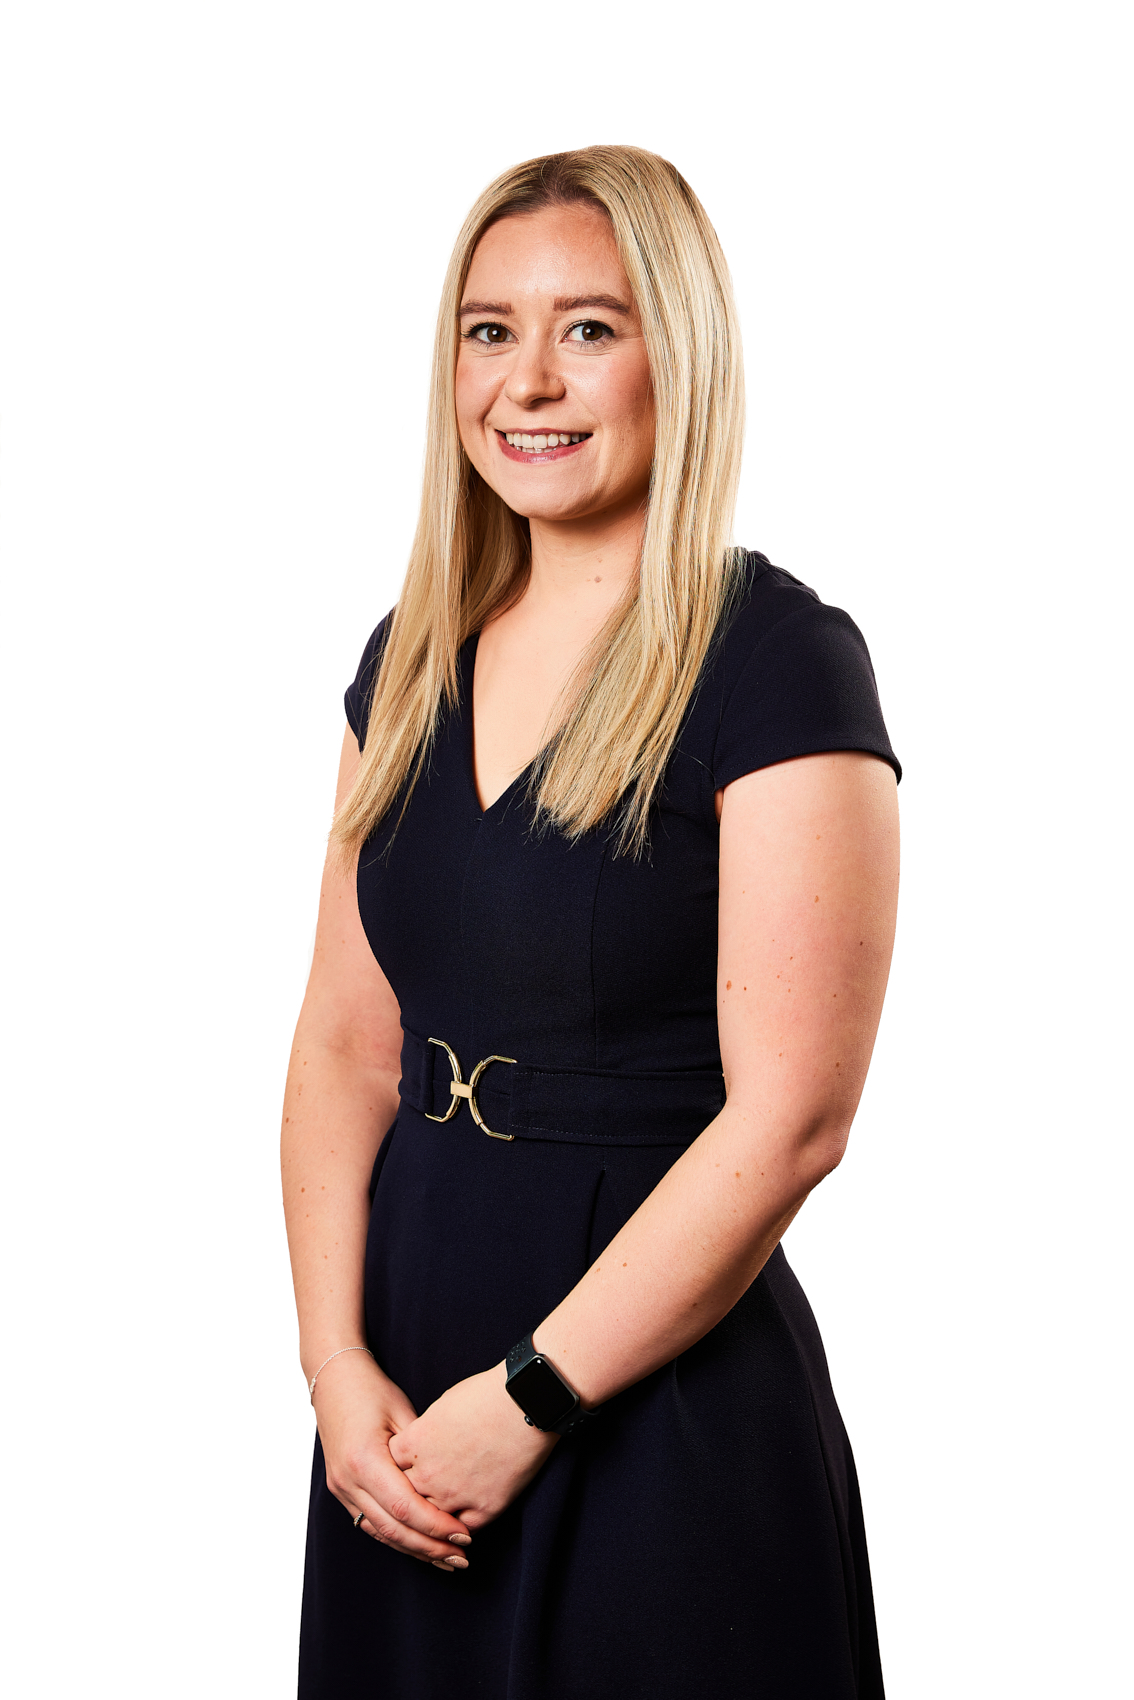 Sophie Arrowsmith - Family Solicitor in Leeds